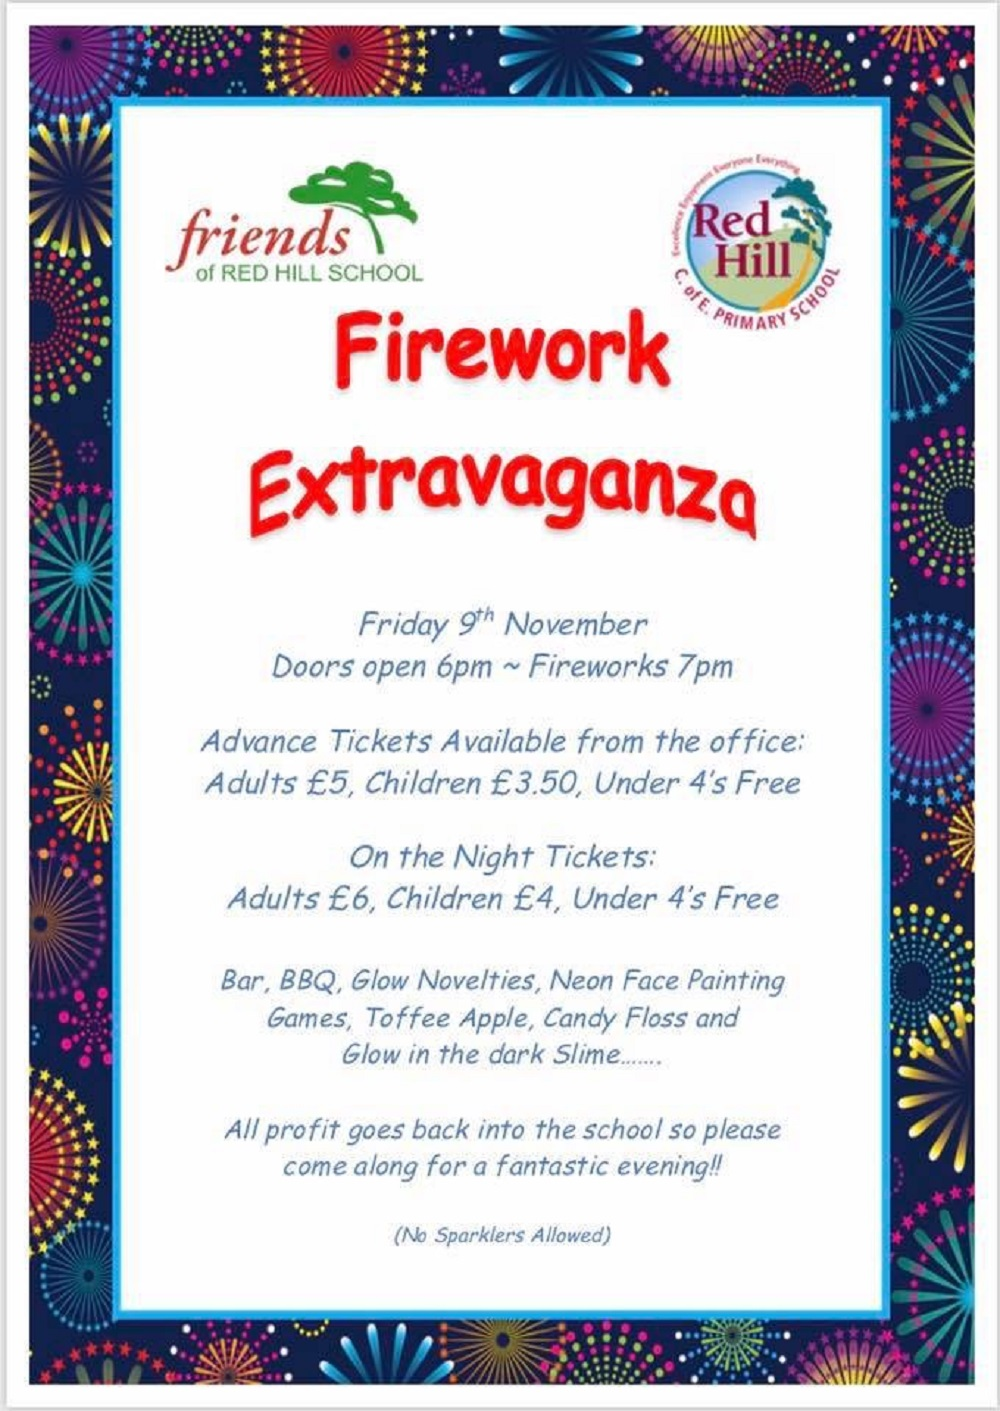 Red Hill School staging Firework Extravaganza